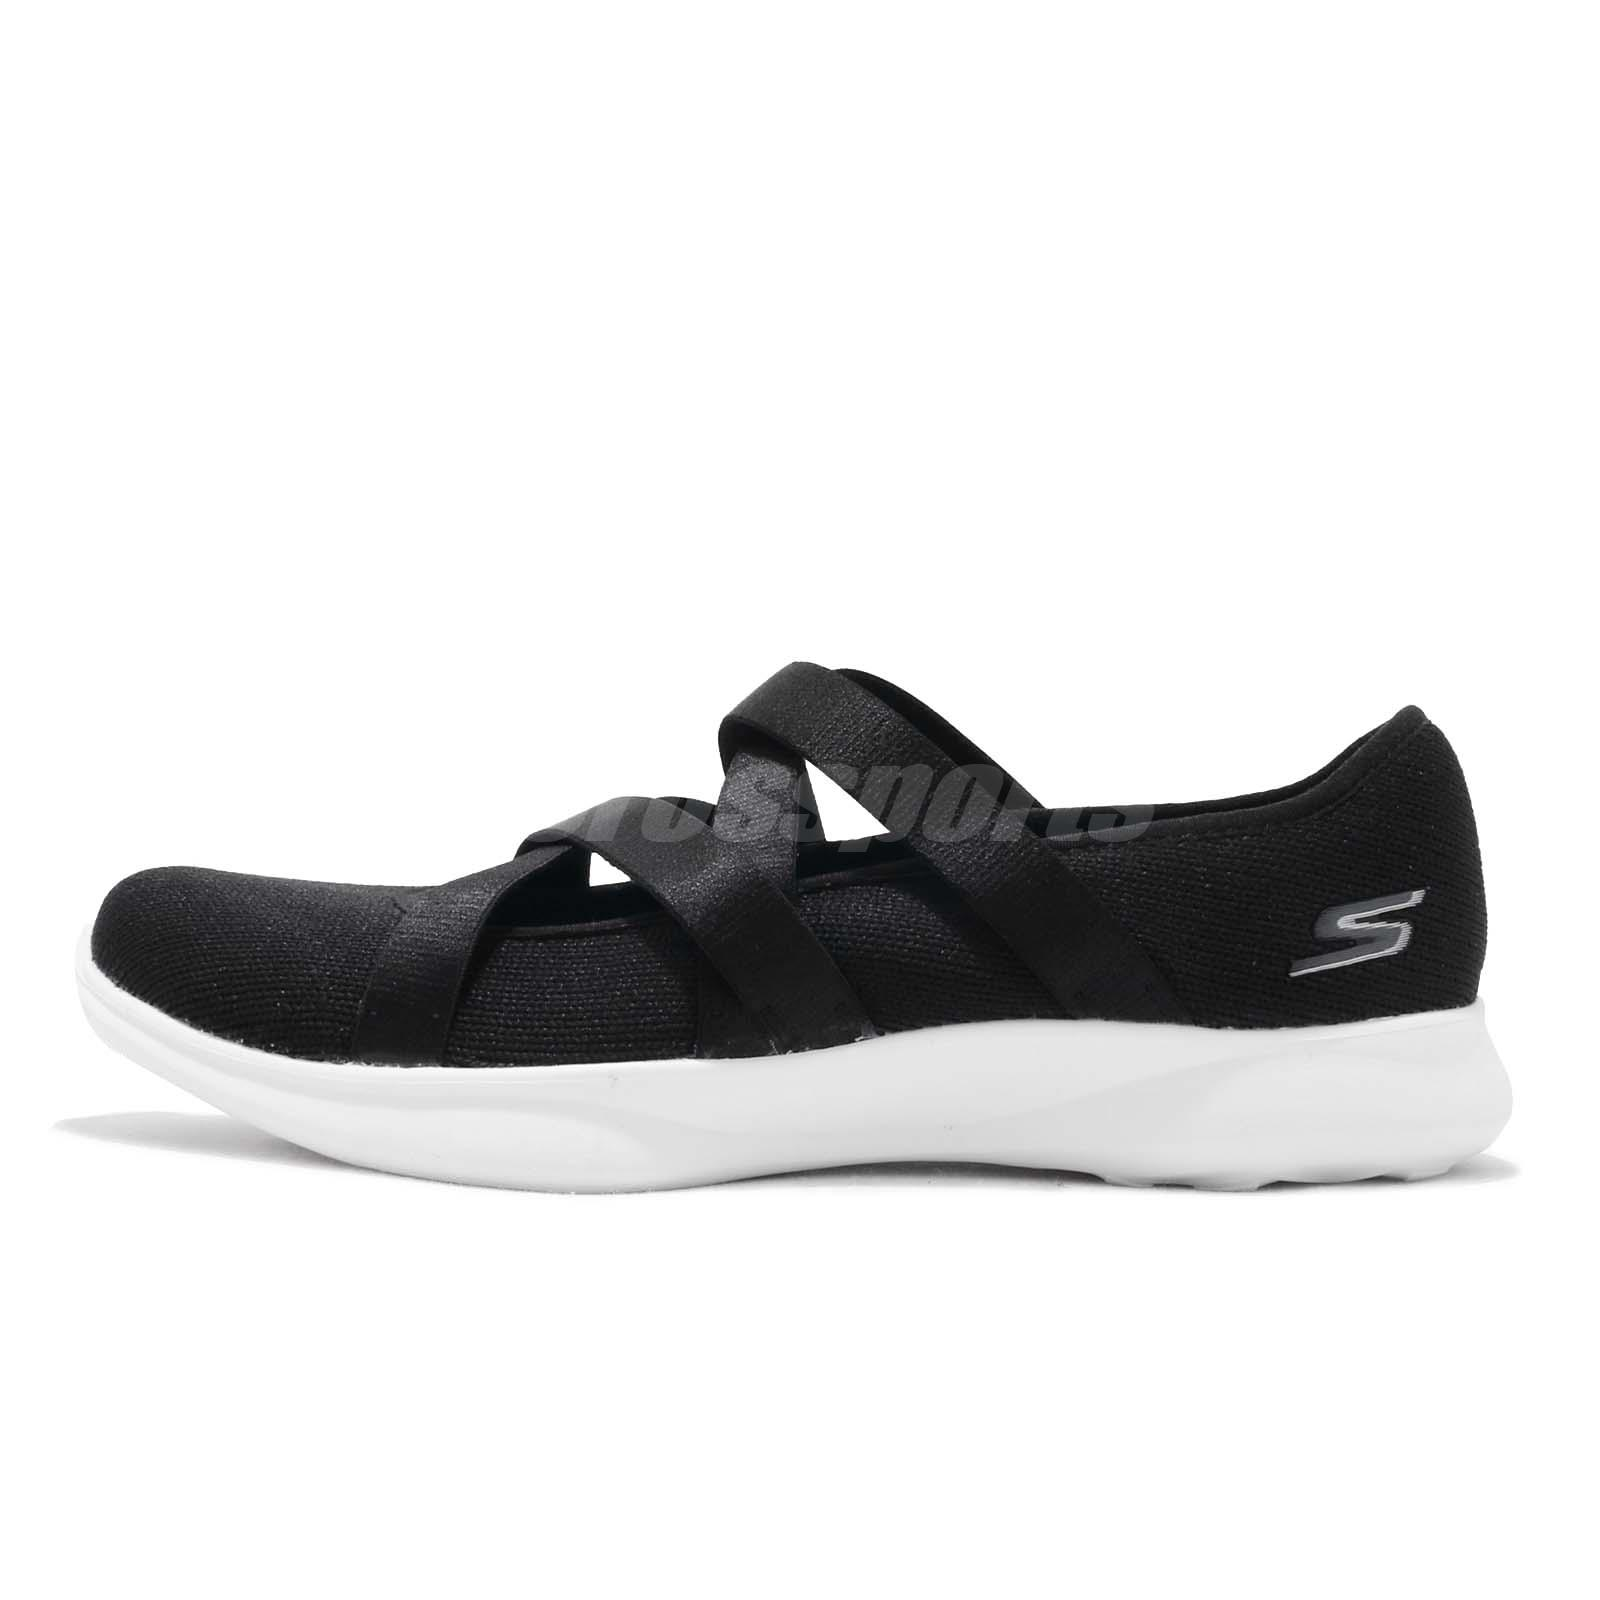 7e6cbb100fa1 Skechers Serene-Elation Black White Women Slip On Walking Casual Shoes  15847-BKW